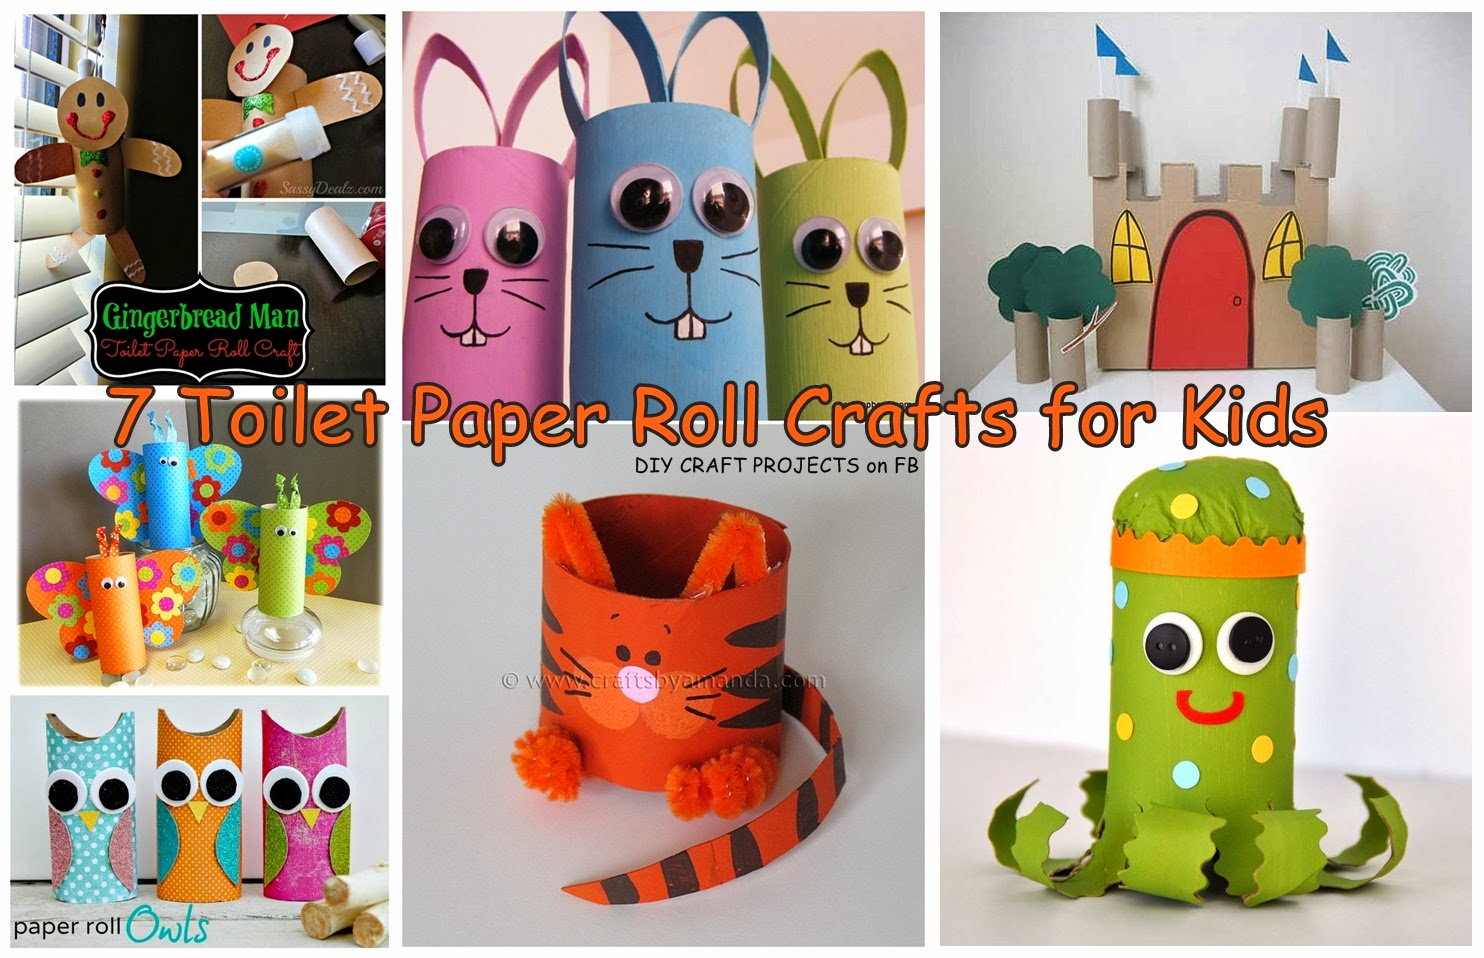 7 Toilet Paper Roll Crafts for Kids